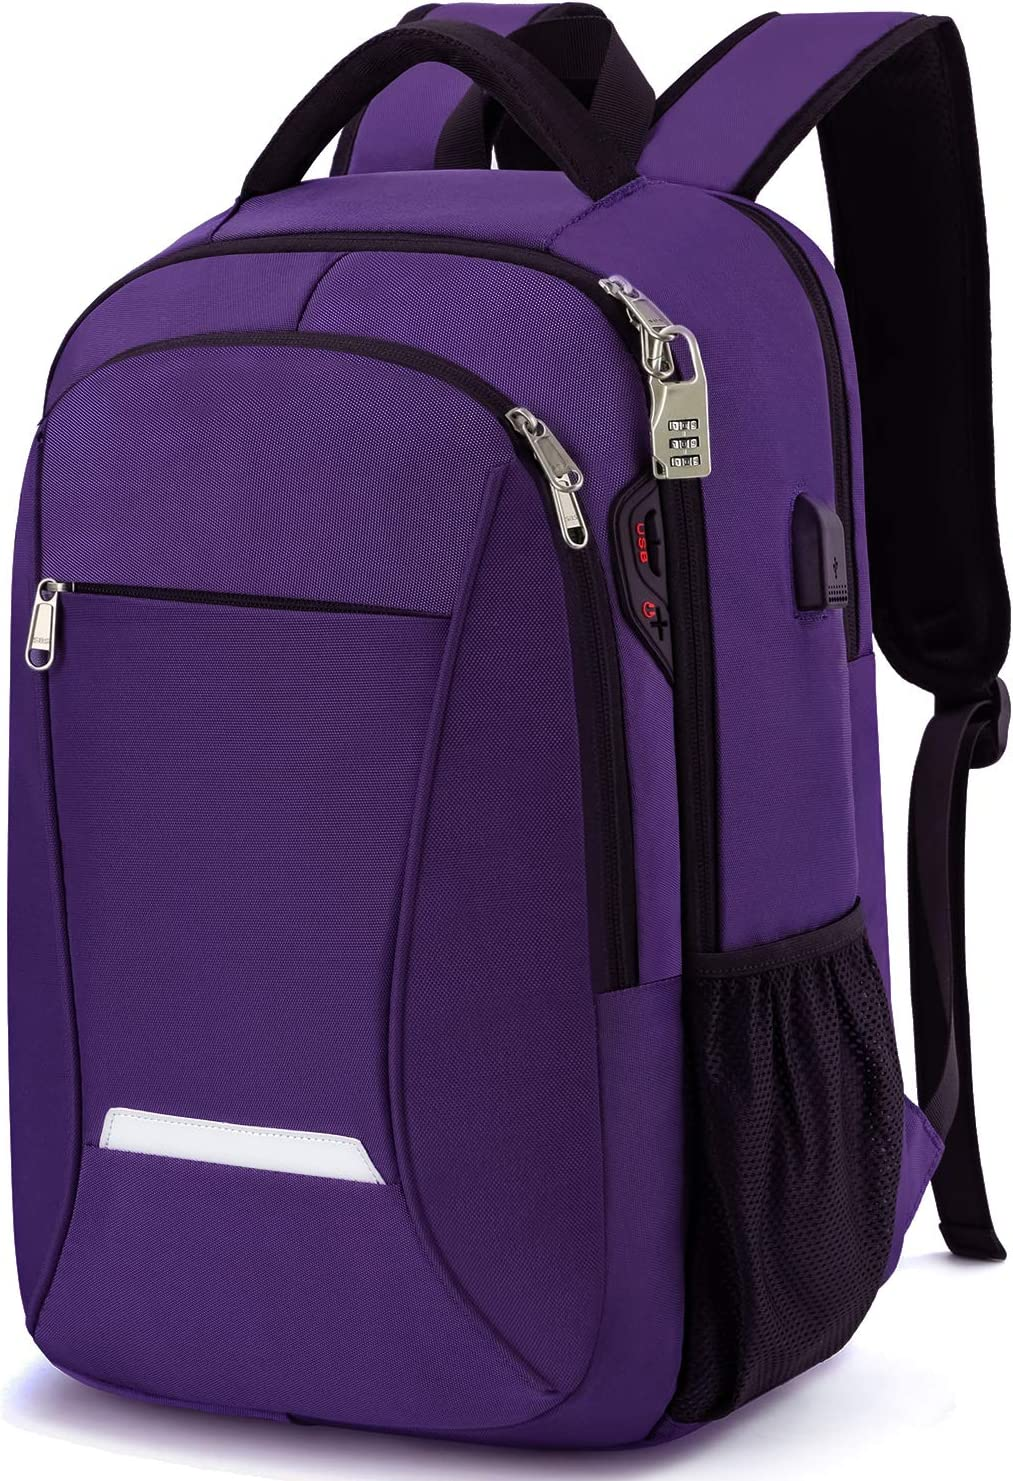 Backpack for Women, Durable Lightweight Anti Theft Travel Laptop Backpack 15.6 Inch with USB Port/Earphone Port, Large Capacity School Backpack for Girls College Student Book Bag, Purple